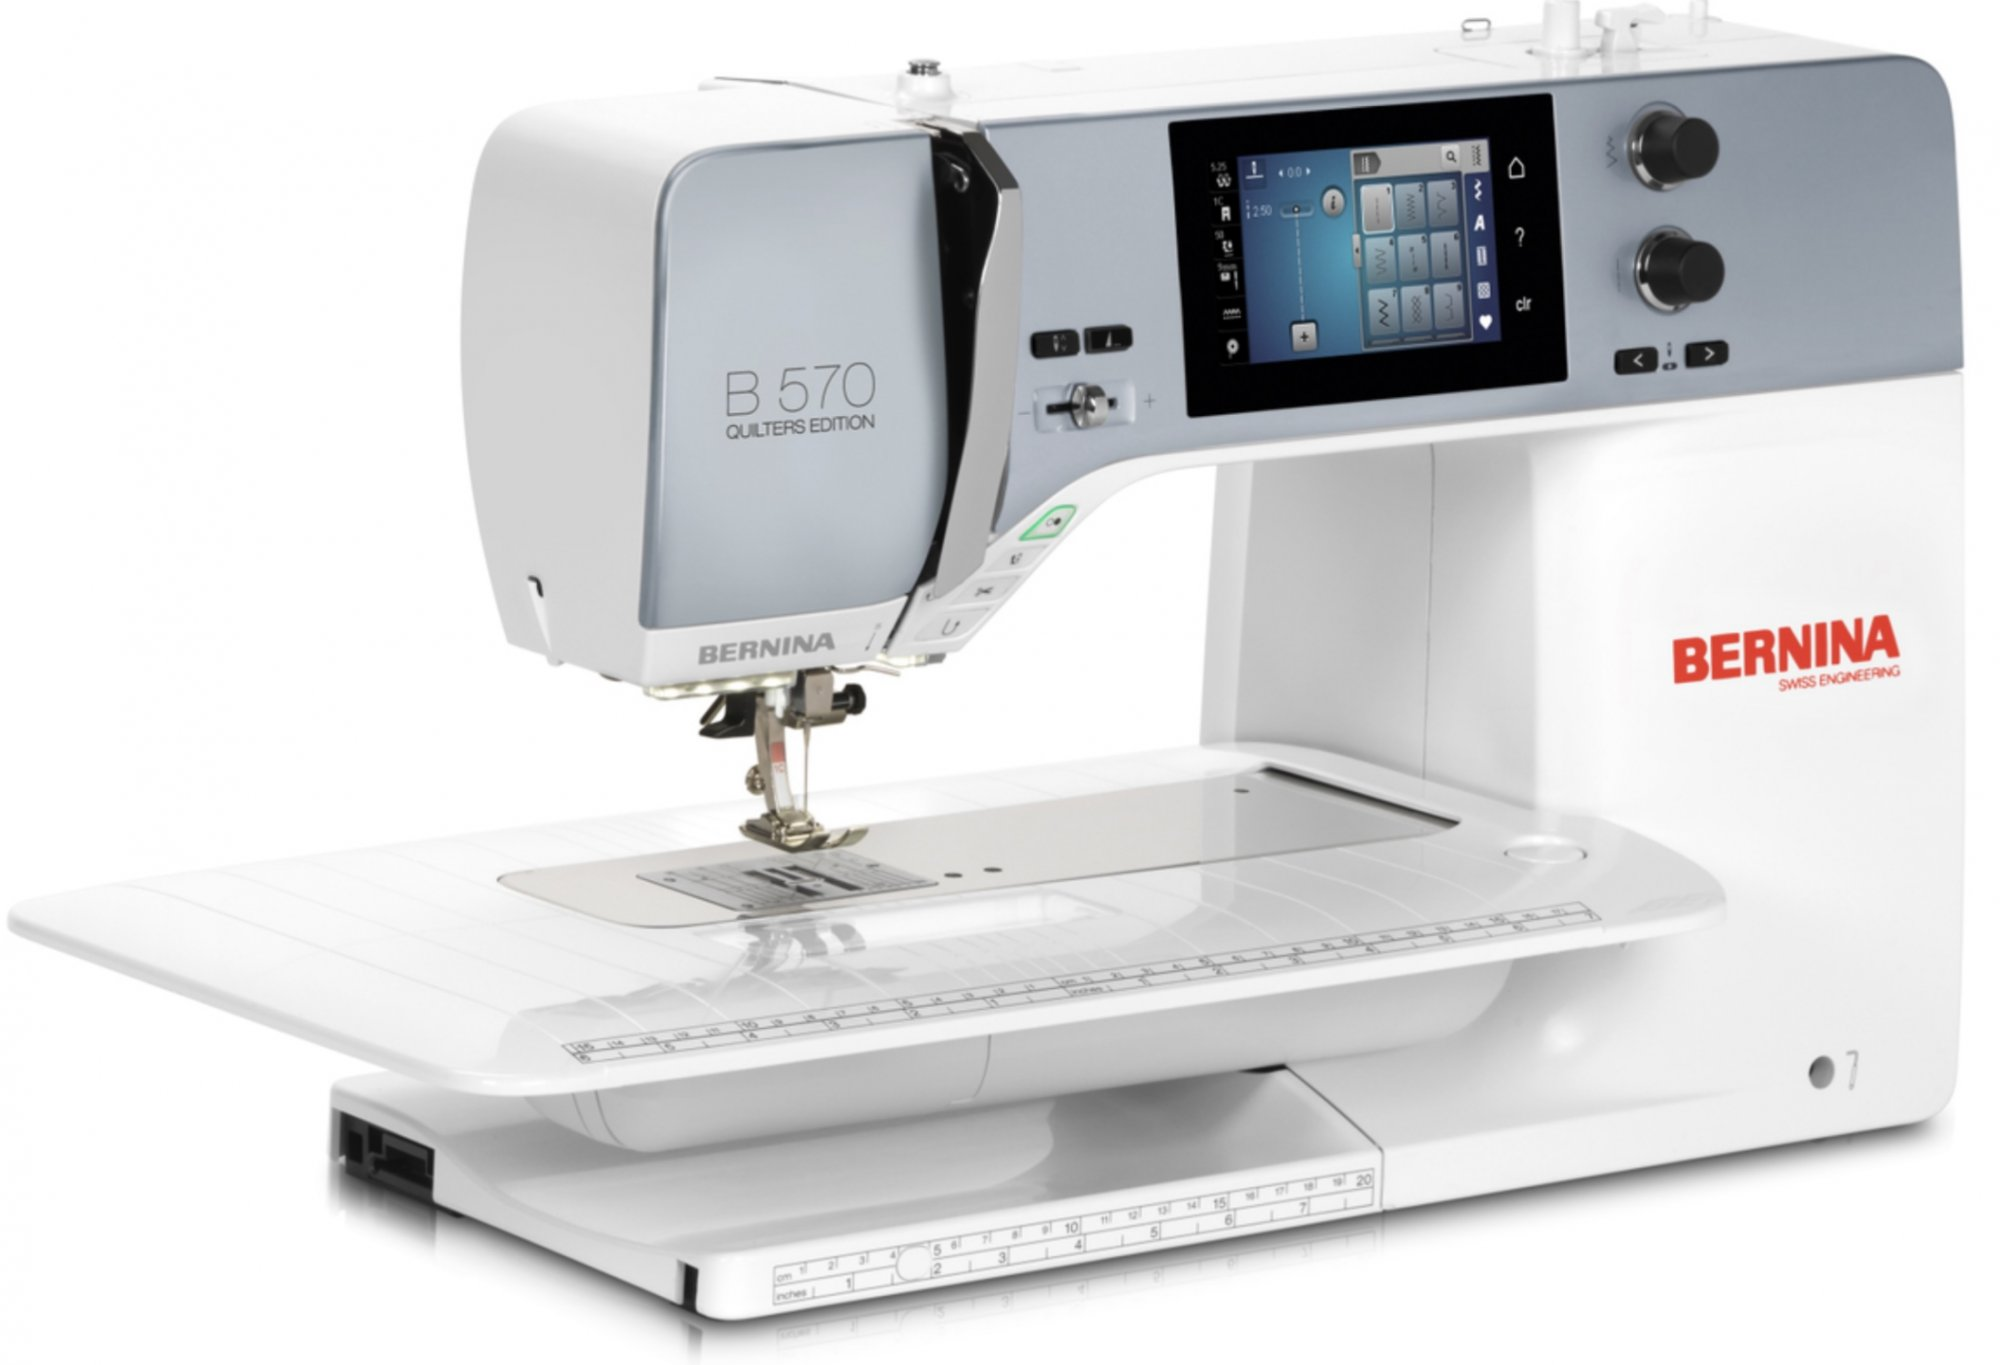 BERNINA 570QE - The versatile one with the wide range of functions.